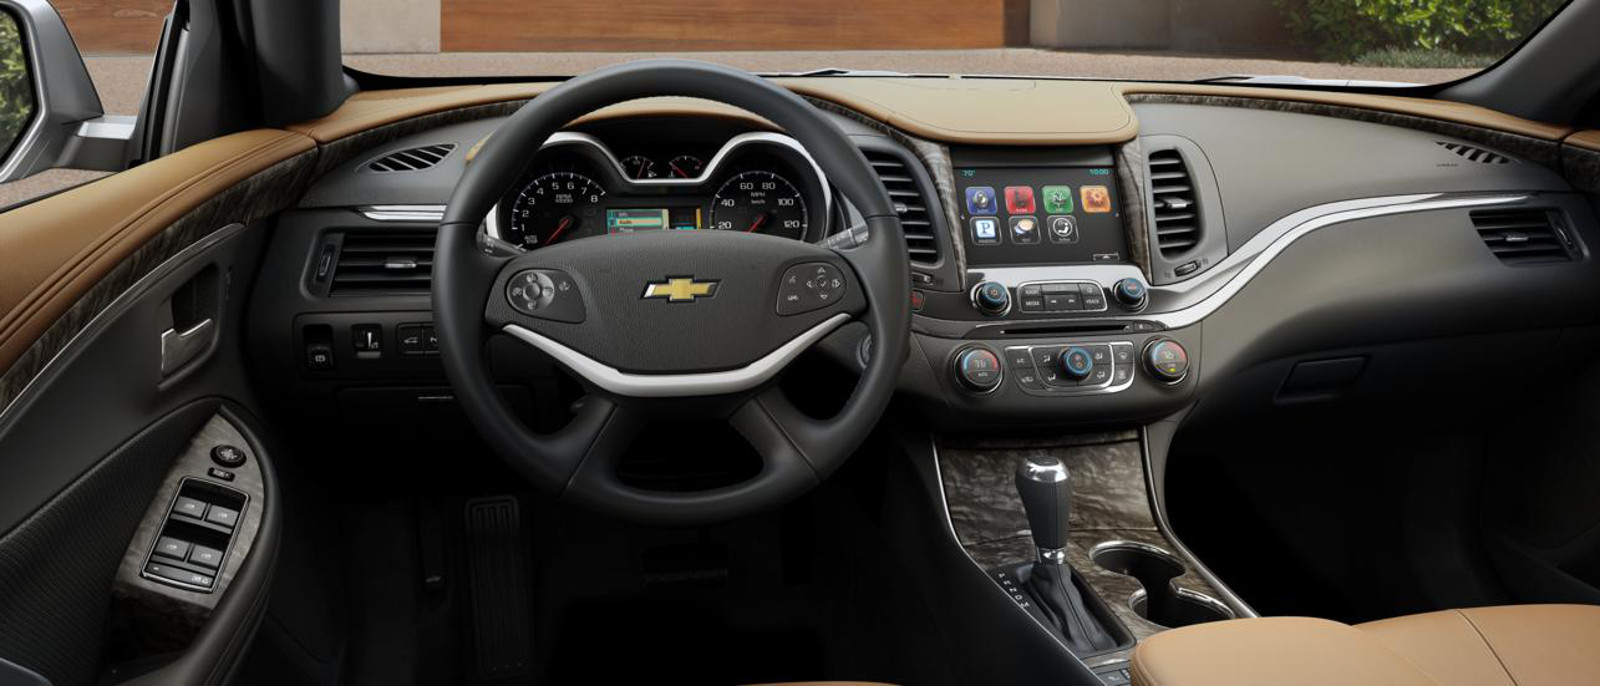 2015 Chevy Impala LT V6 Start Up, Tour and Review - YouTube